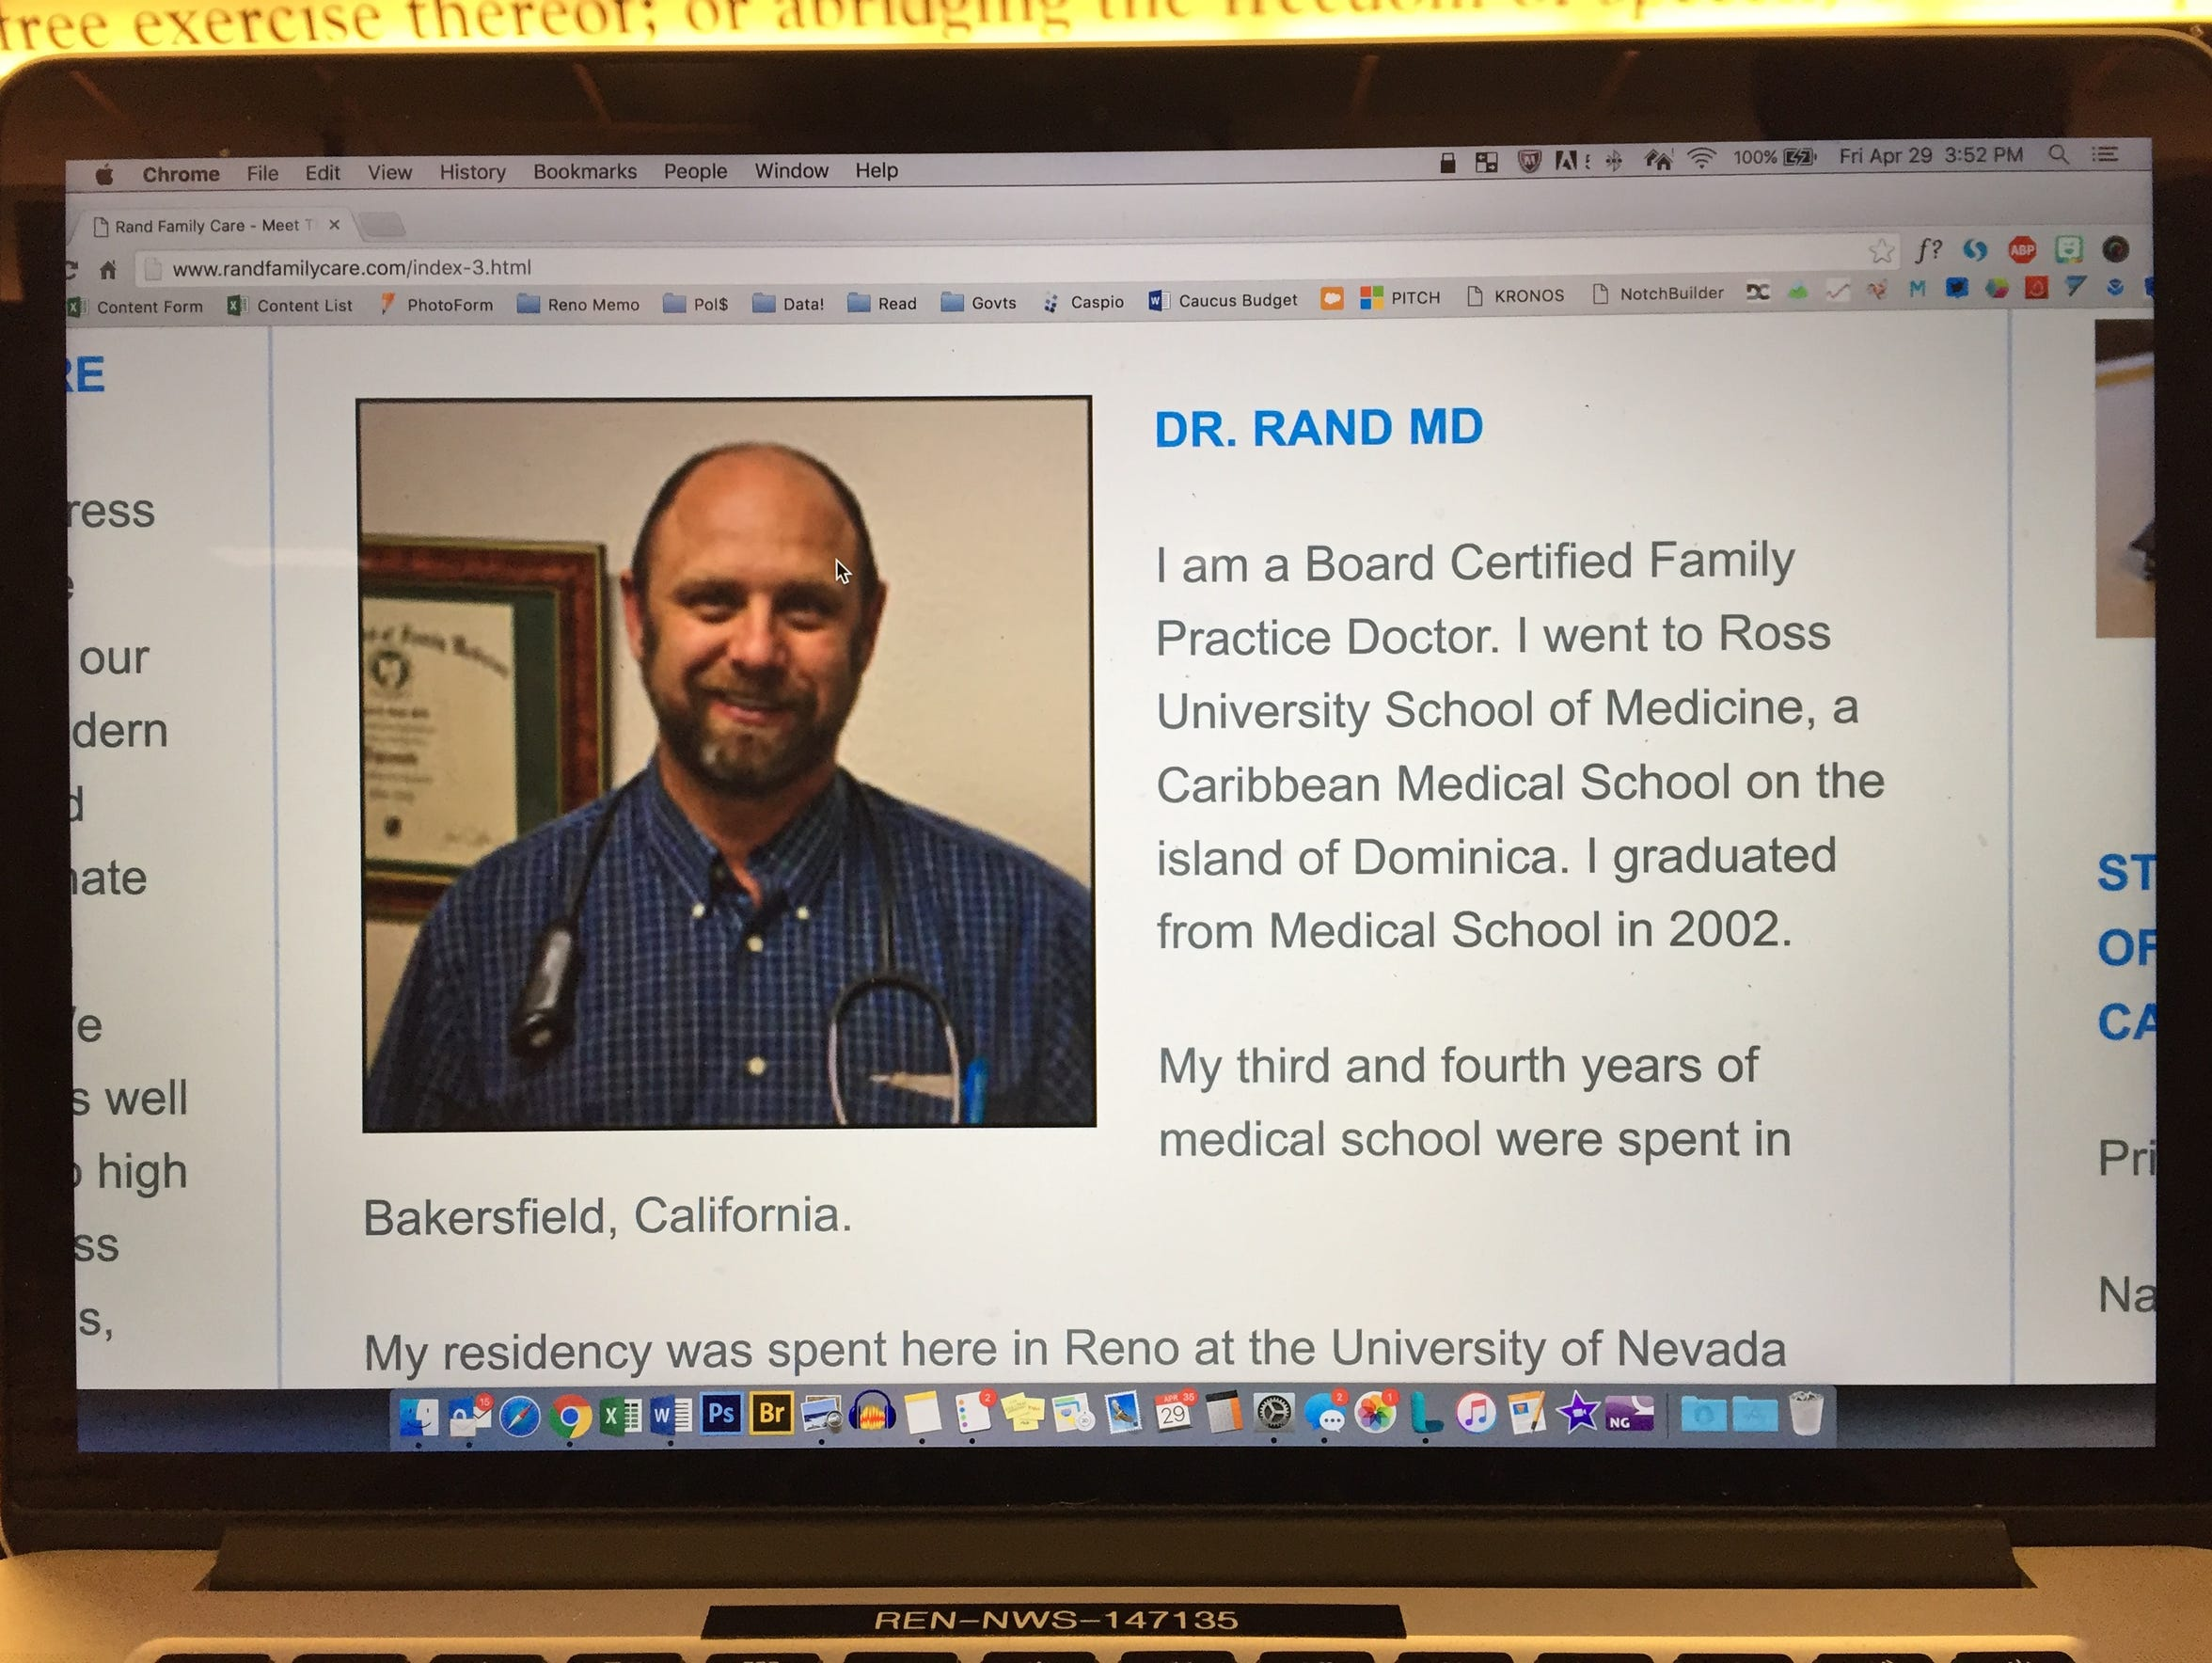 Photo of of Dr. Robert Rand's biography on his website.